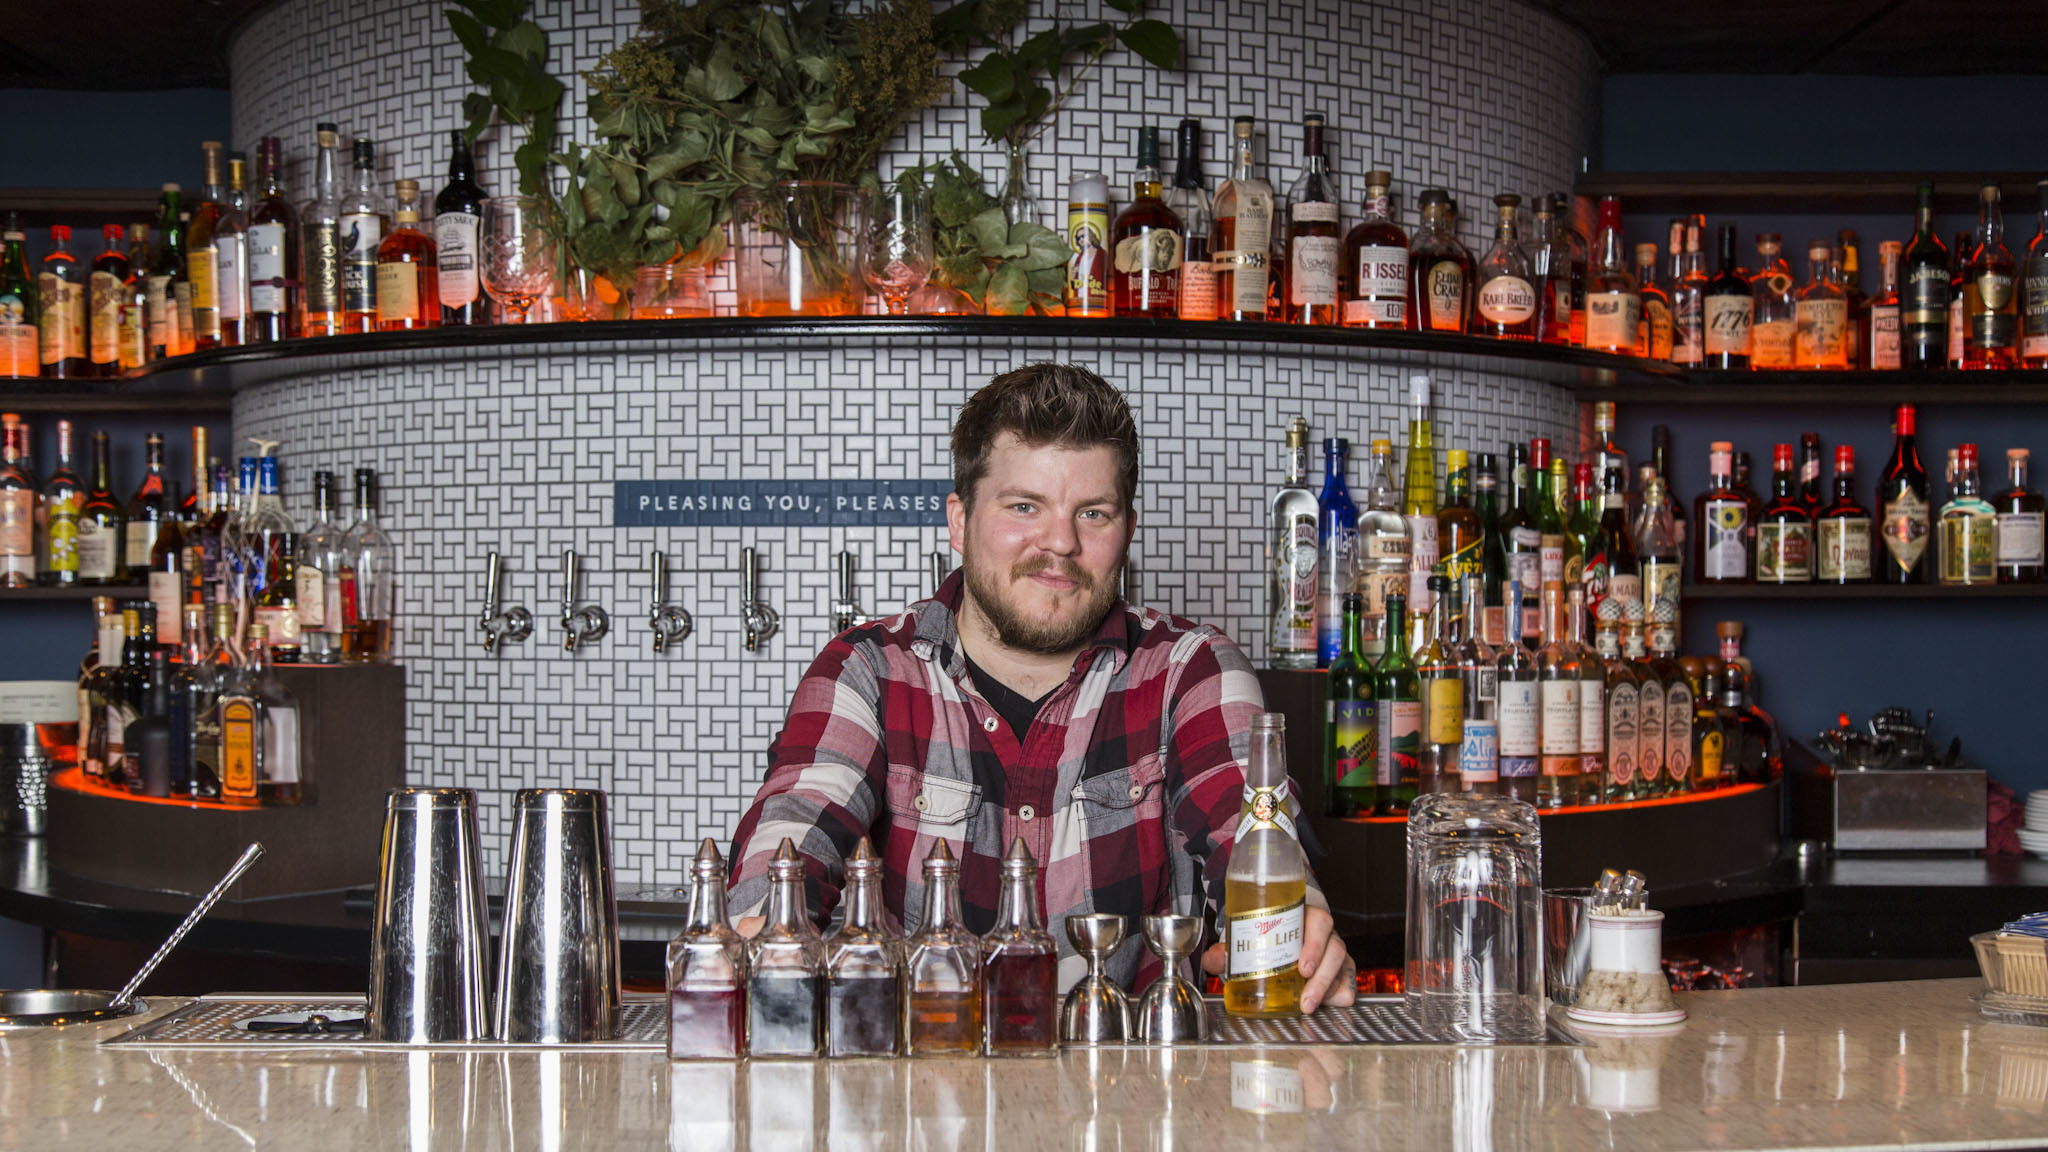 Know your bartender: Dustin Drankiewicz at Moneygun